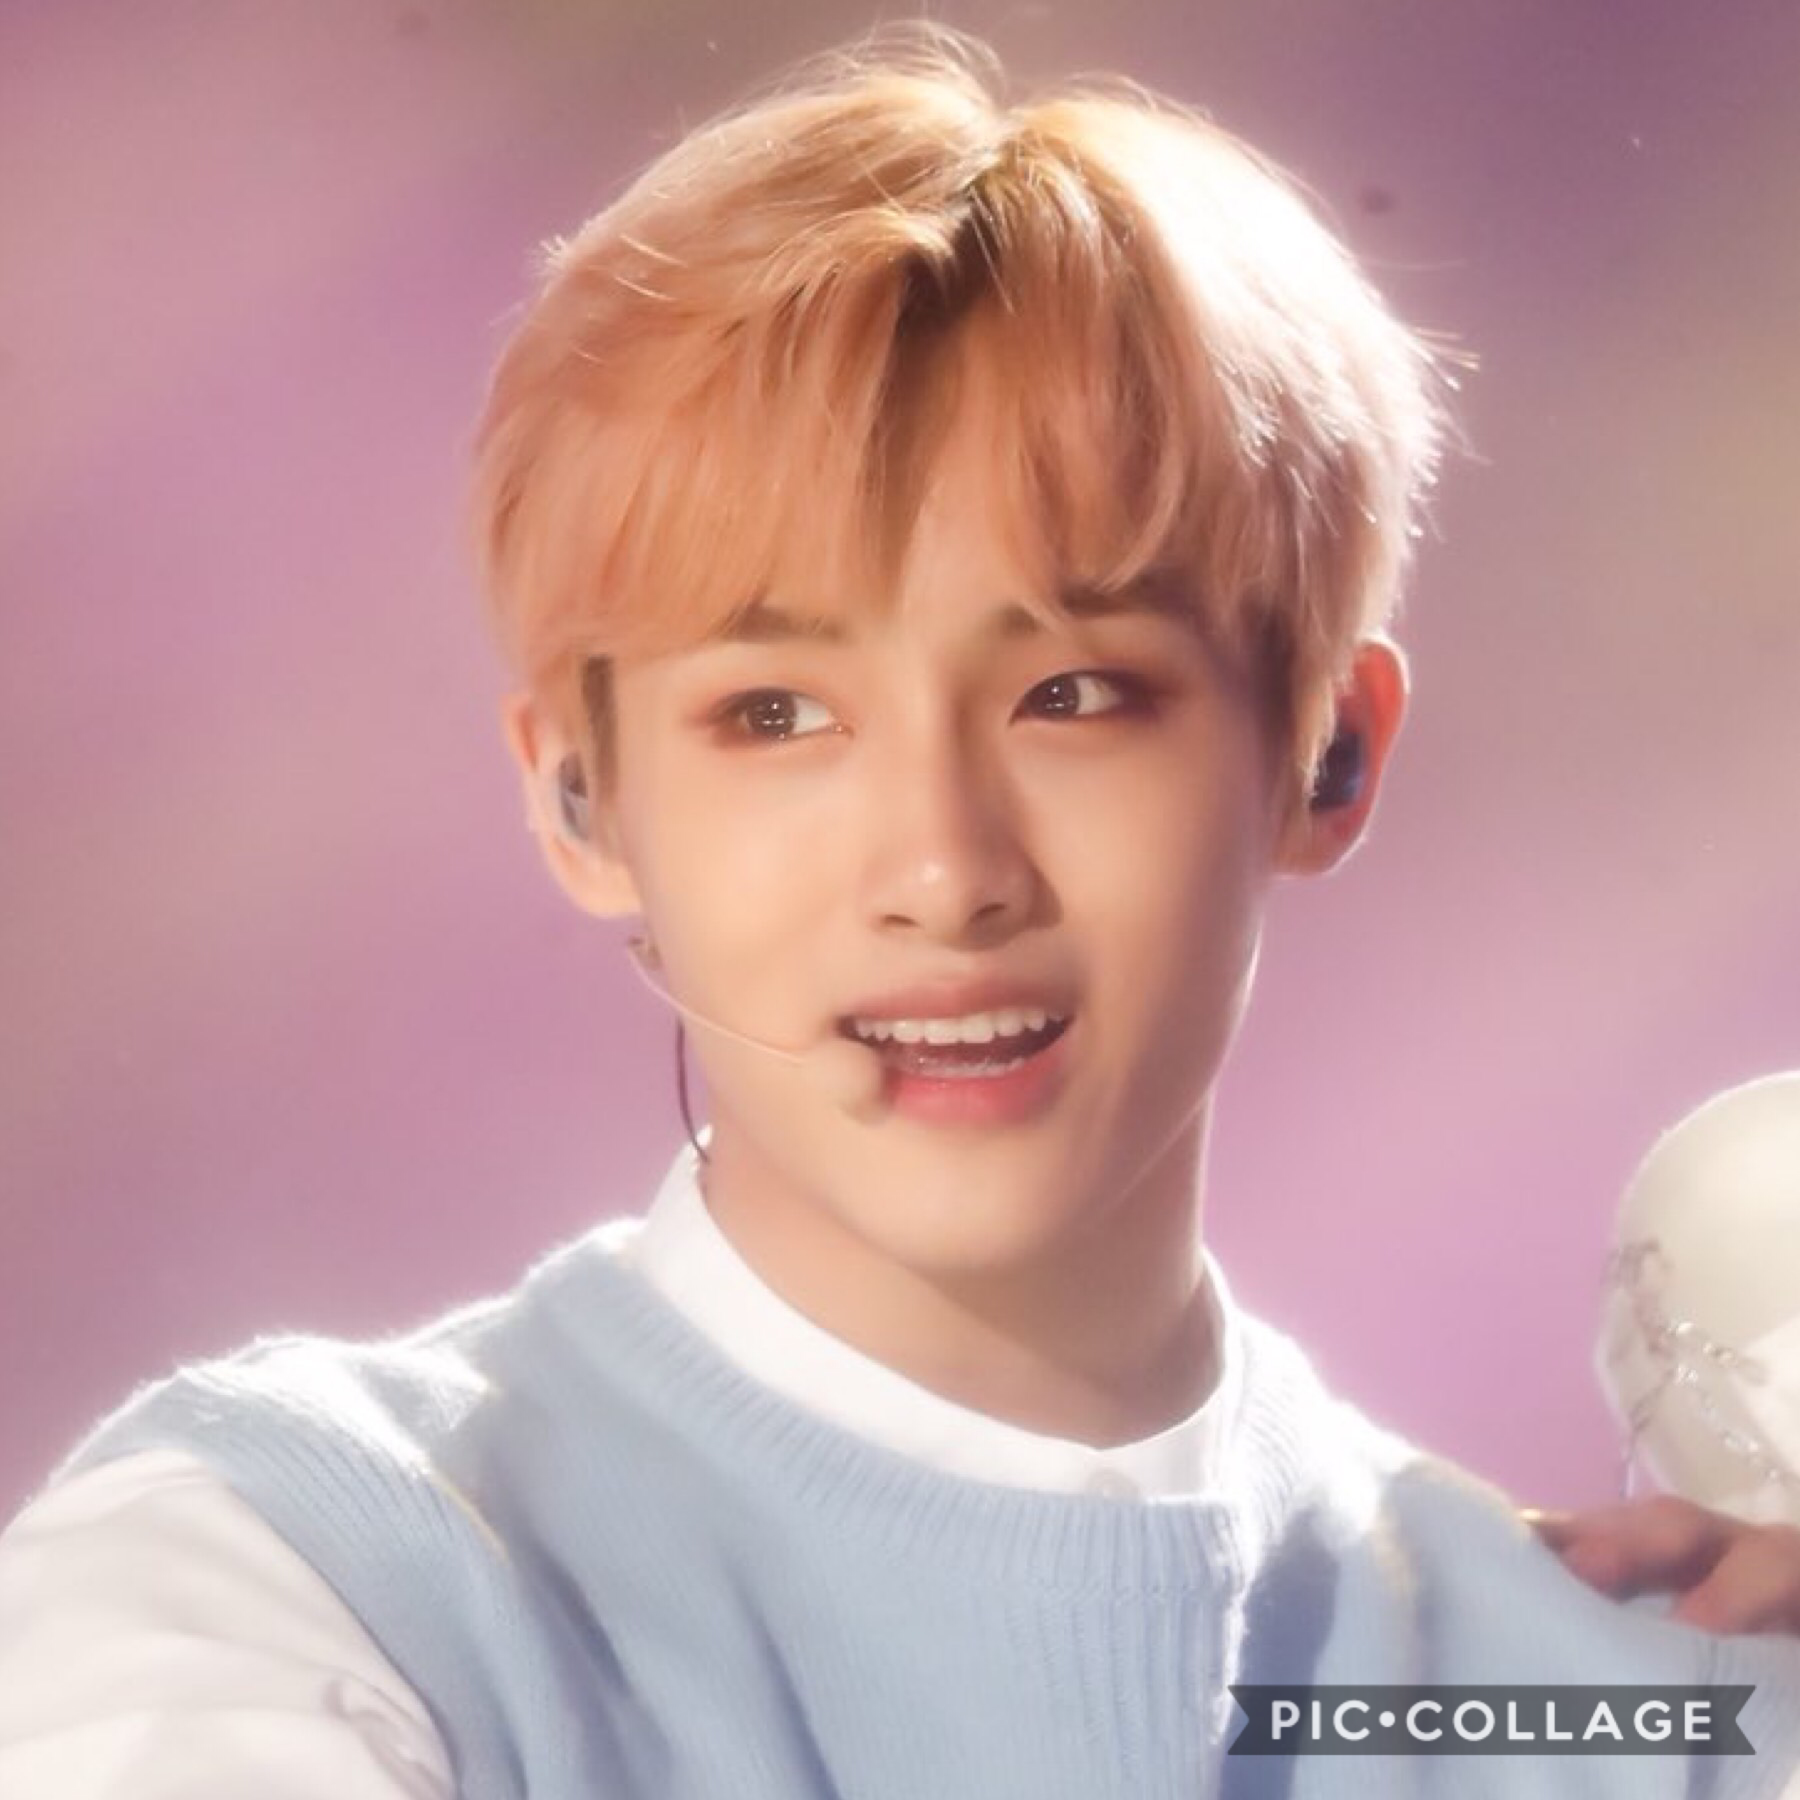 """〔 𝑇𝑎𝑝 𝑚𝑒 〕 ⁺ Newish theme ig lol anyways I've kind of started an edit but I'm in a """"writers block"""" phase rn :') ⁺ WINWIN is so beautiful I can't- but 𝑠𝑡𝑎𝑛 𝑛𝑐𝑡! ˖ also hugeeee s/o to all those ppl that are active on my acc"""